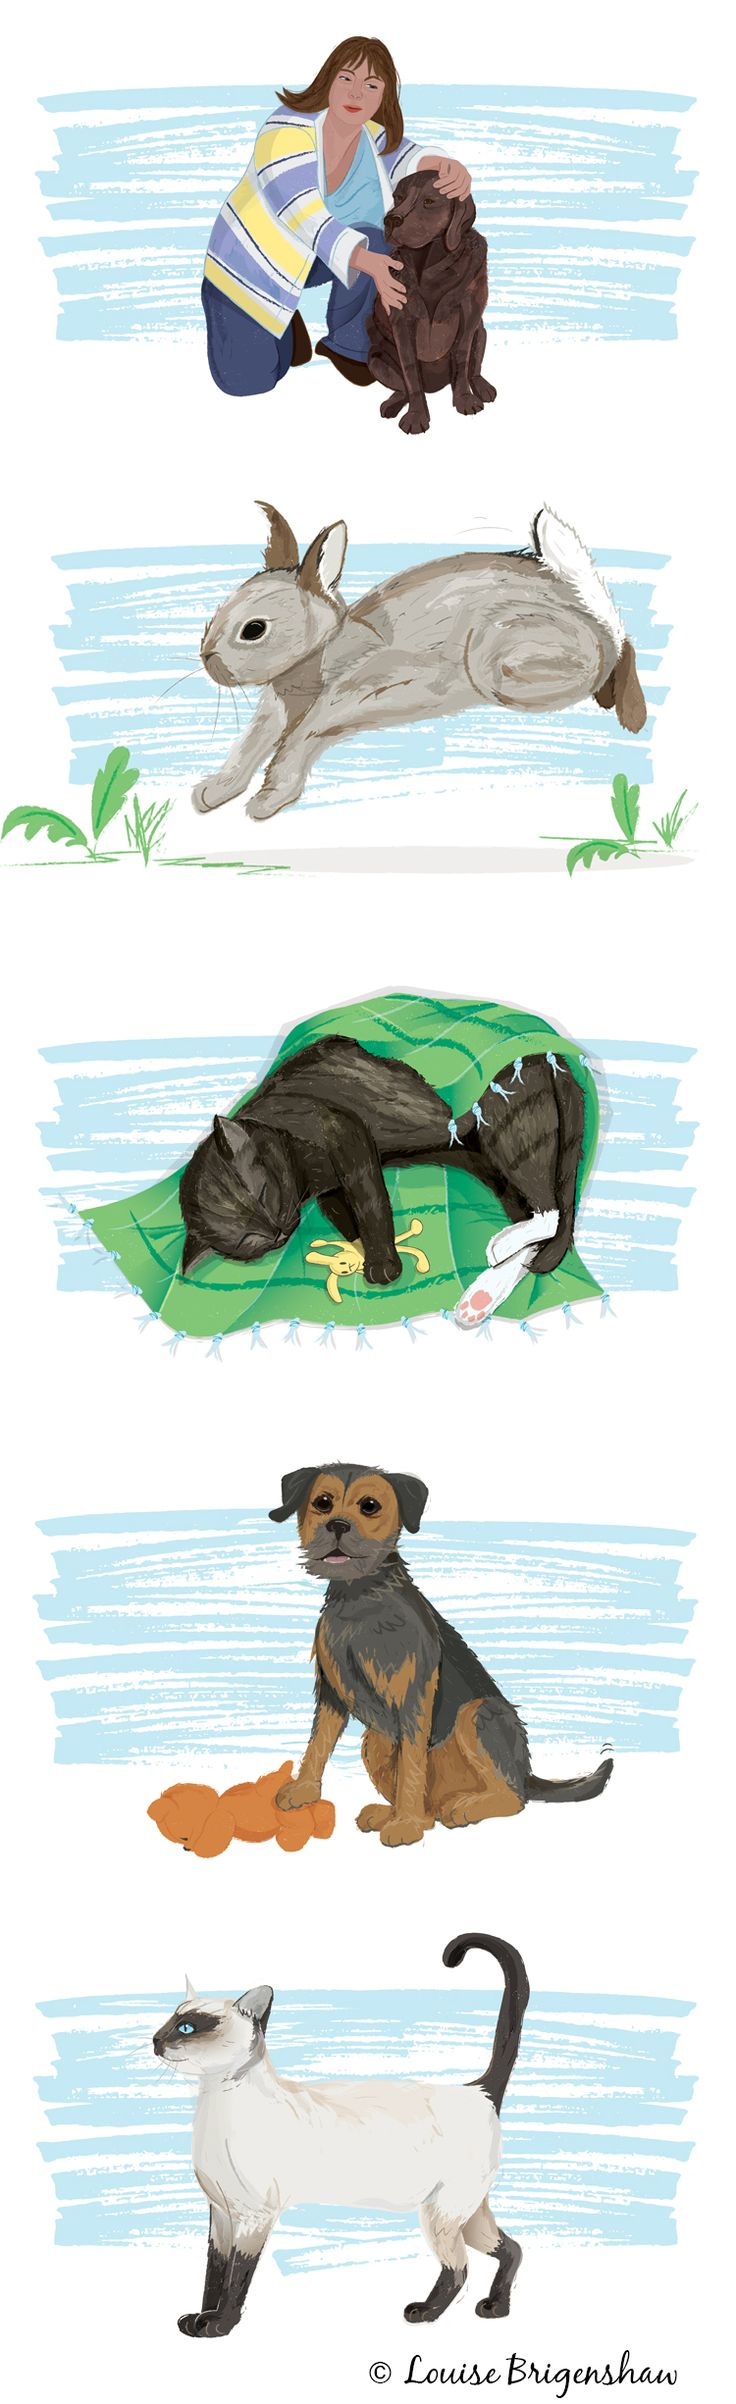 Pet illustrations by Louise Brigenshaw for Pet Plan UK's customer newsletters.